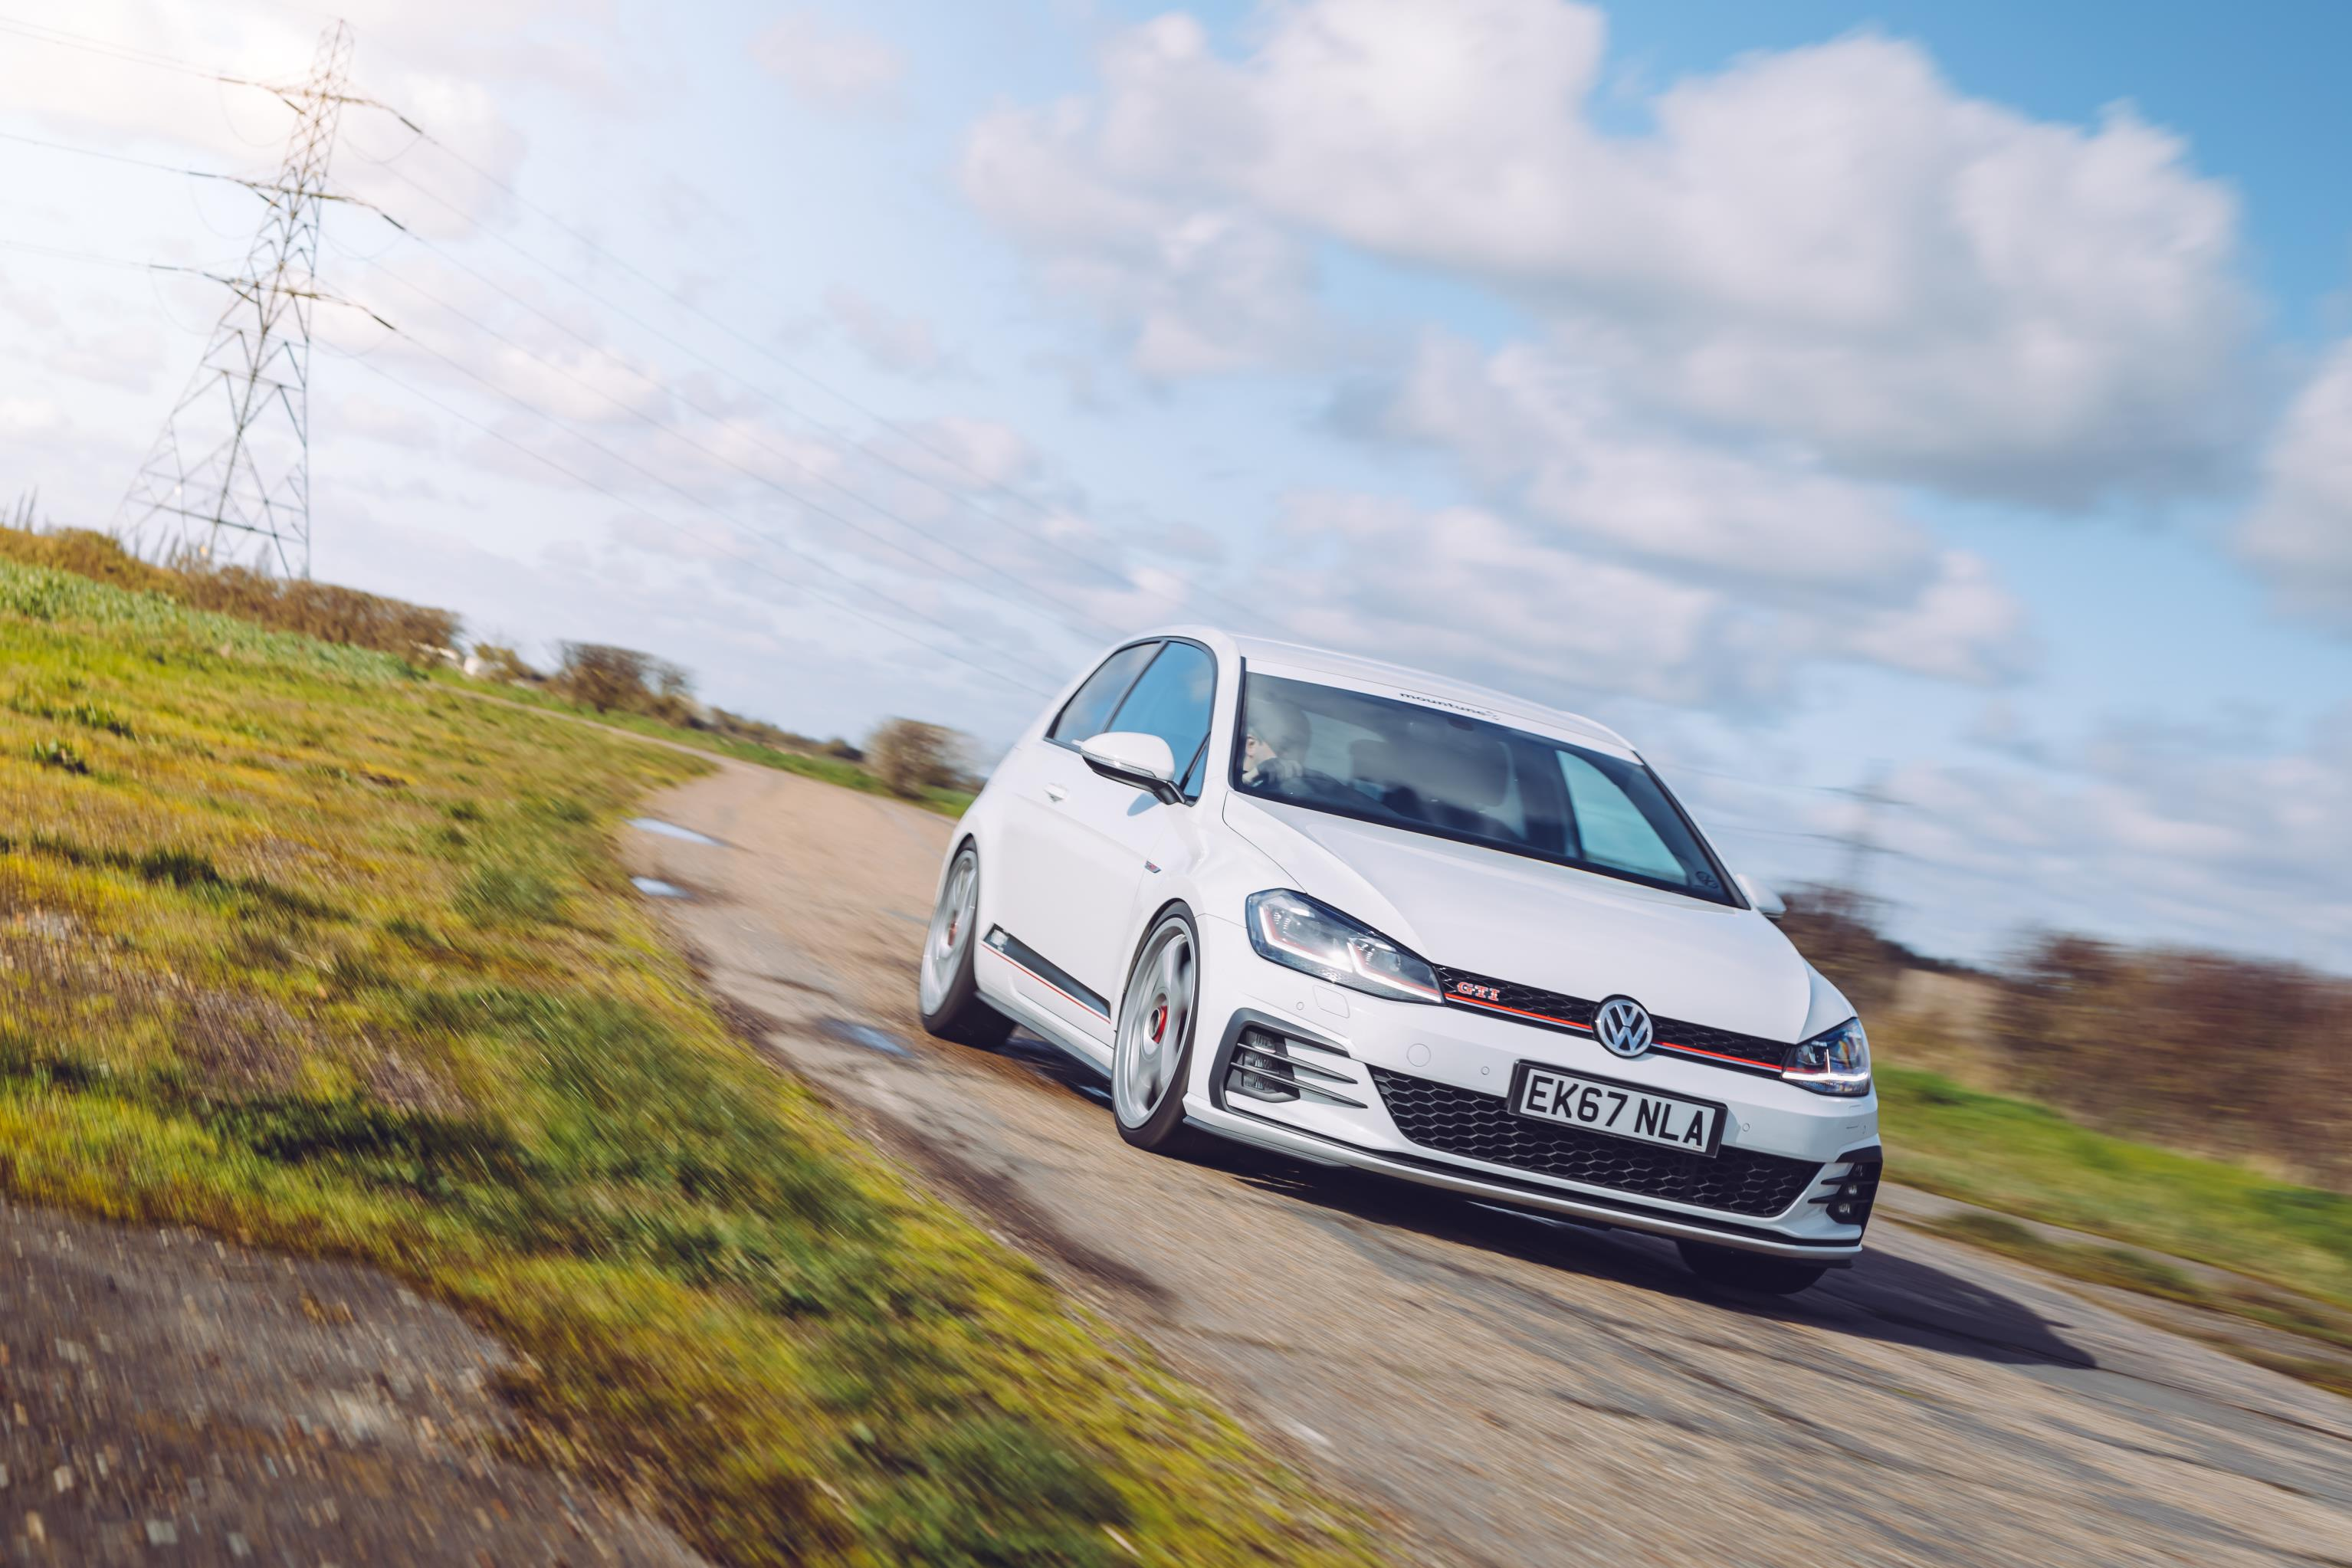 Mountune52 Take Mk7 5 Vw Golf Gti To The Next Level North East Connected